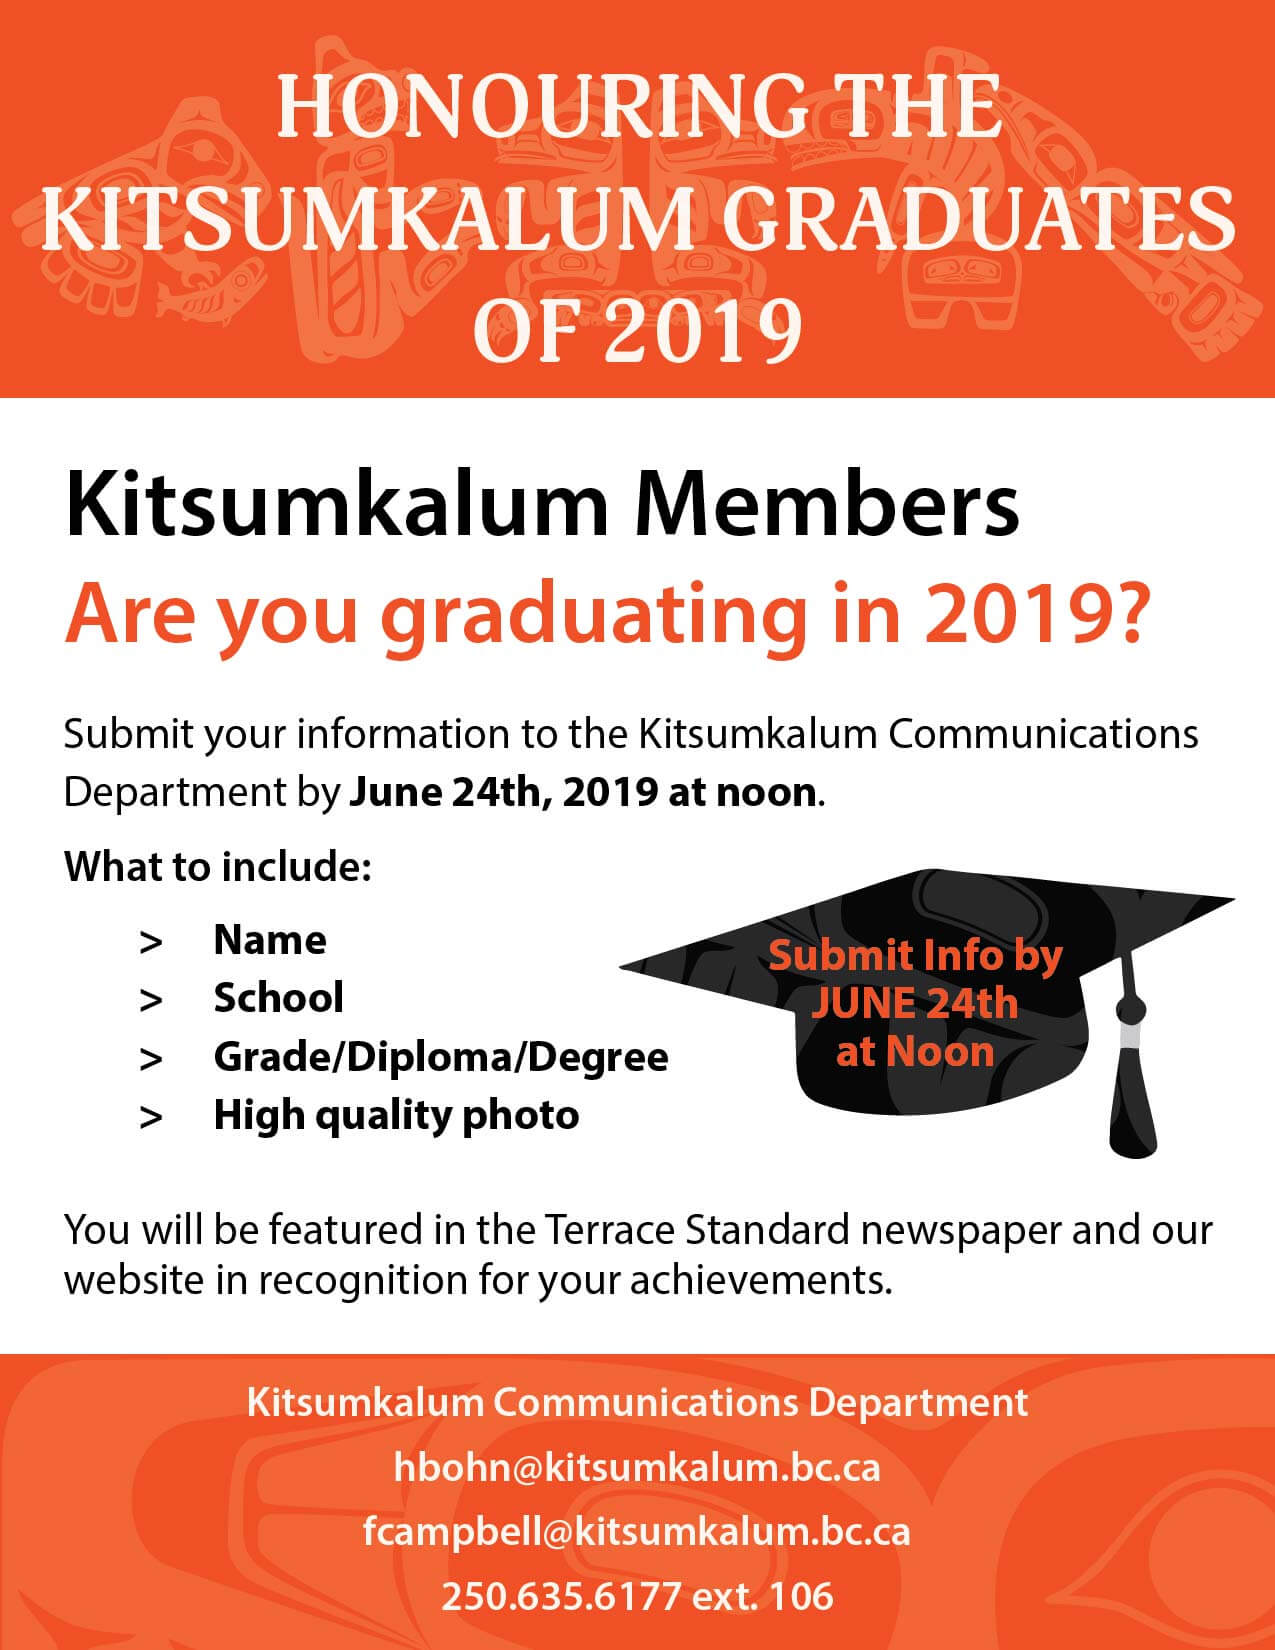 Kitsumkalum Grads of 2019 SUBMIT Your Info by JUNE 24